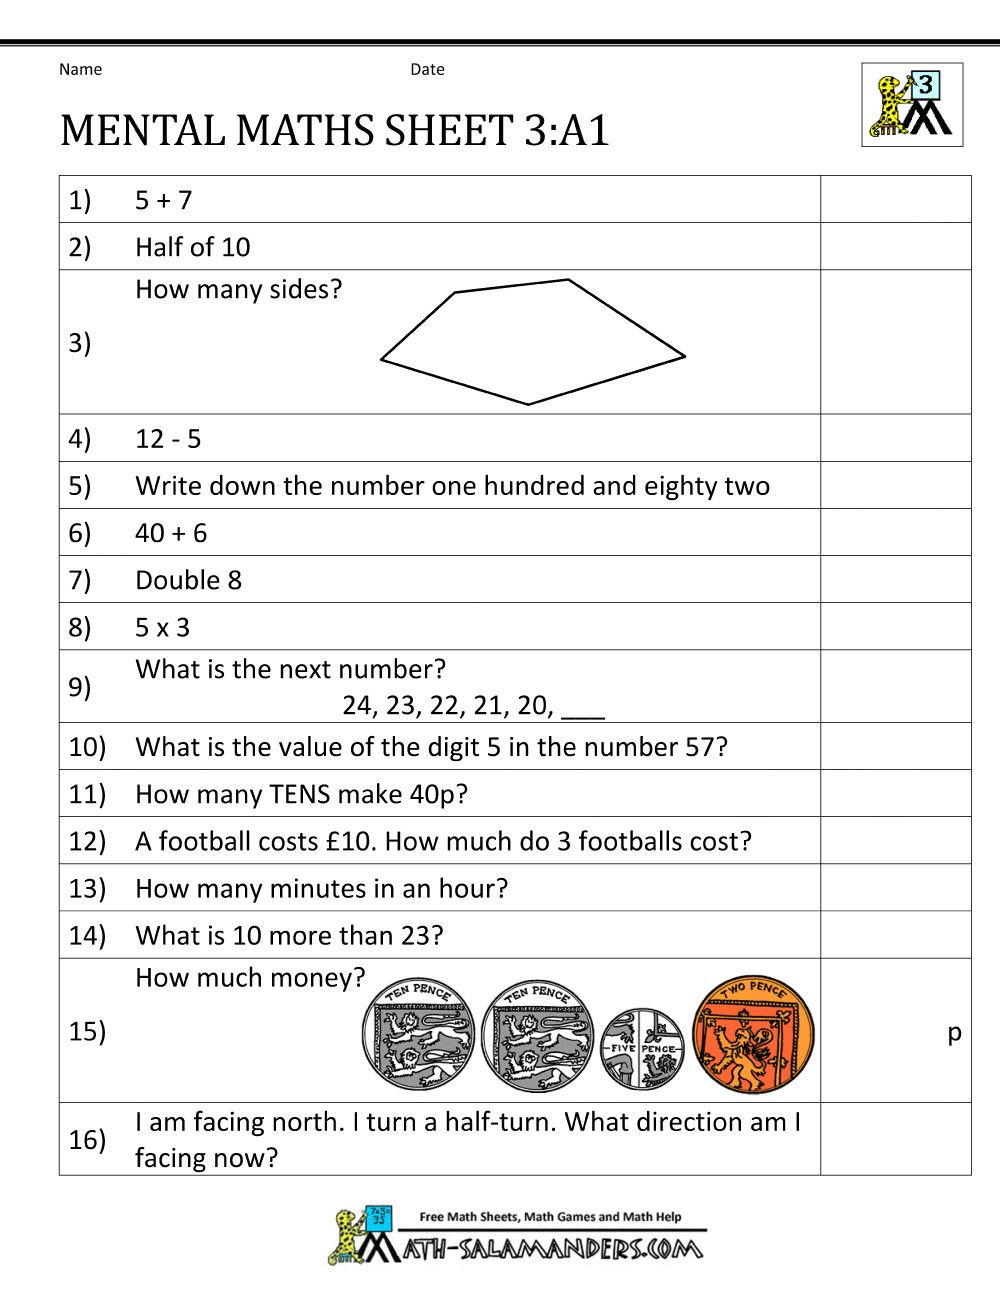 7 Maths Problems for Class 7